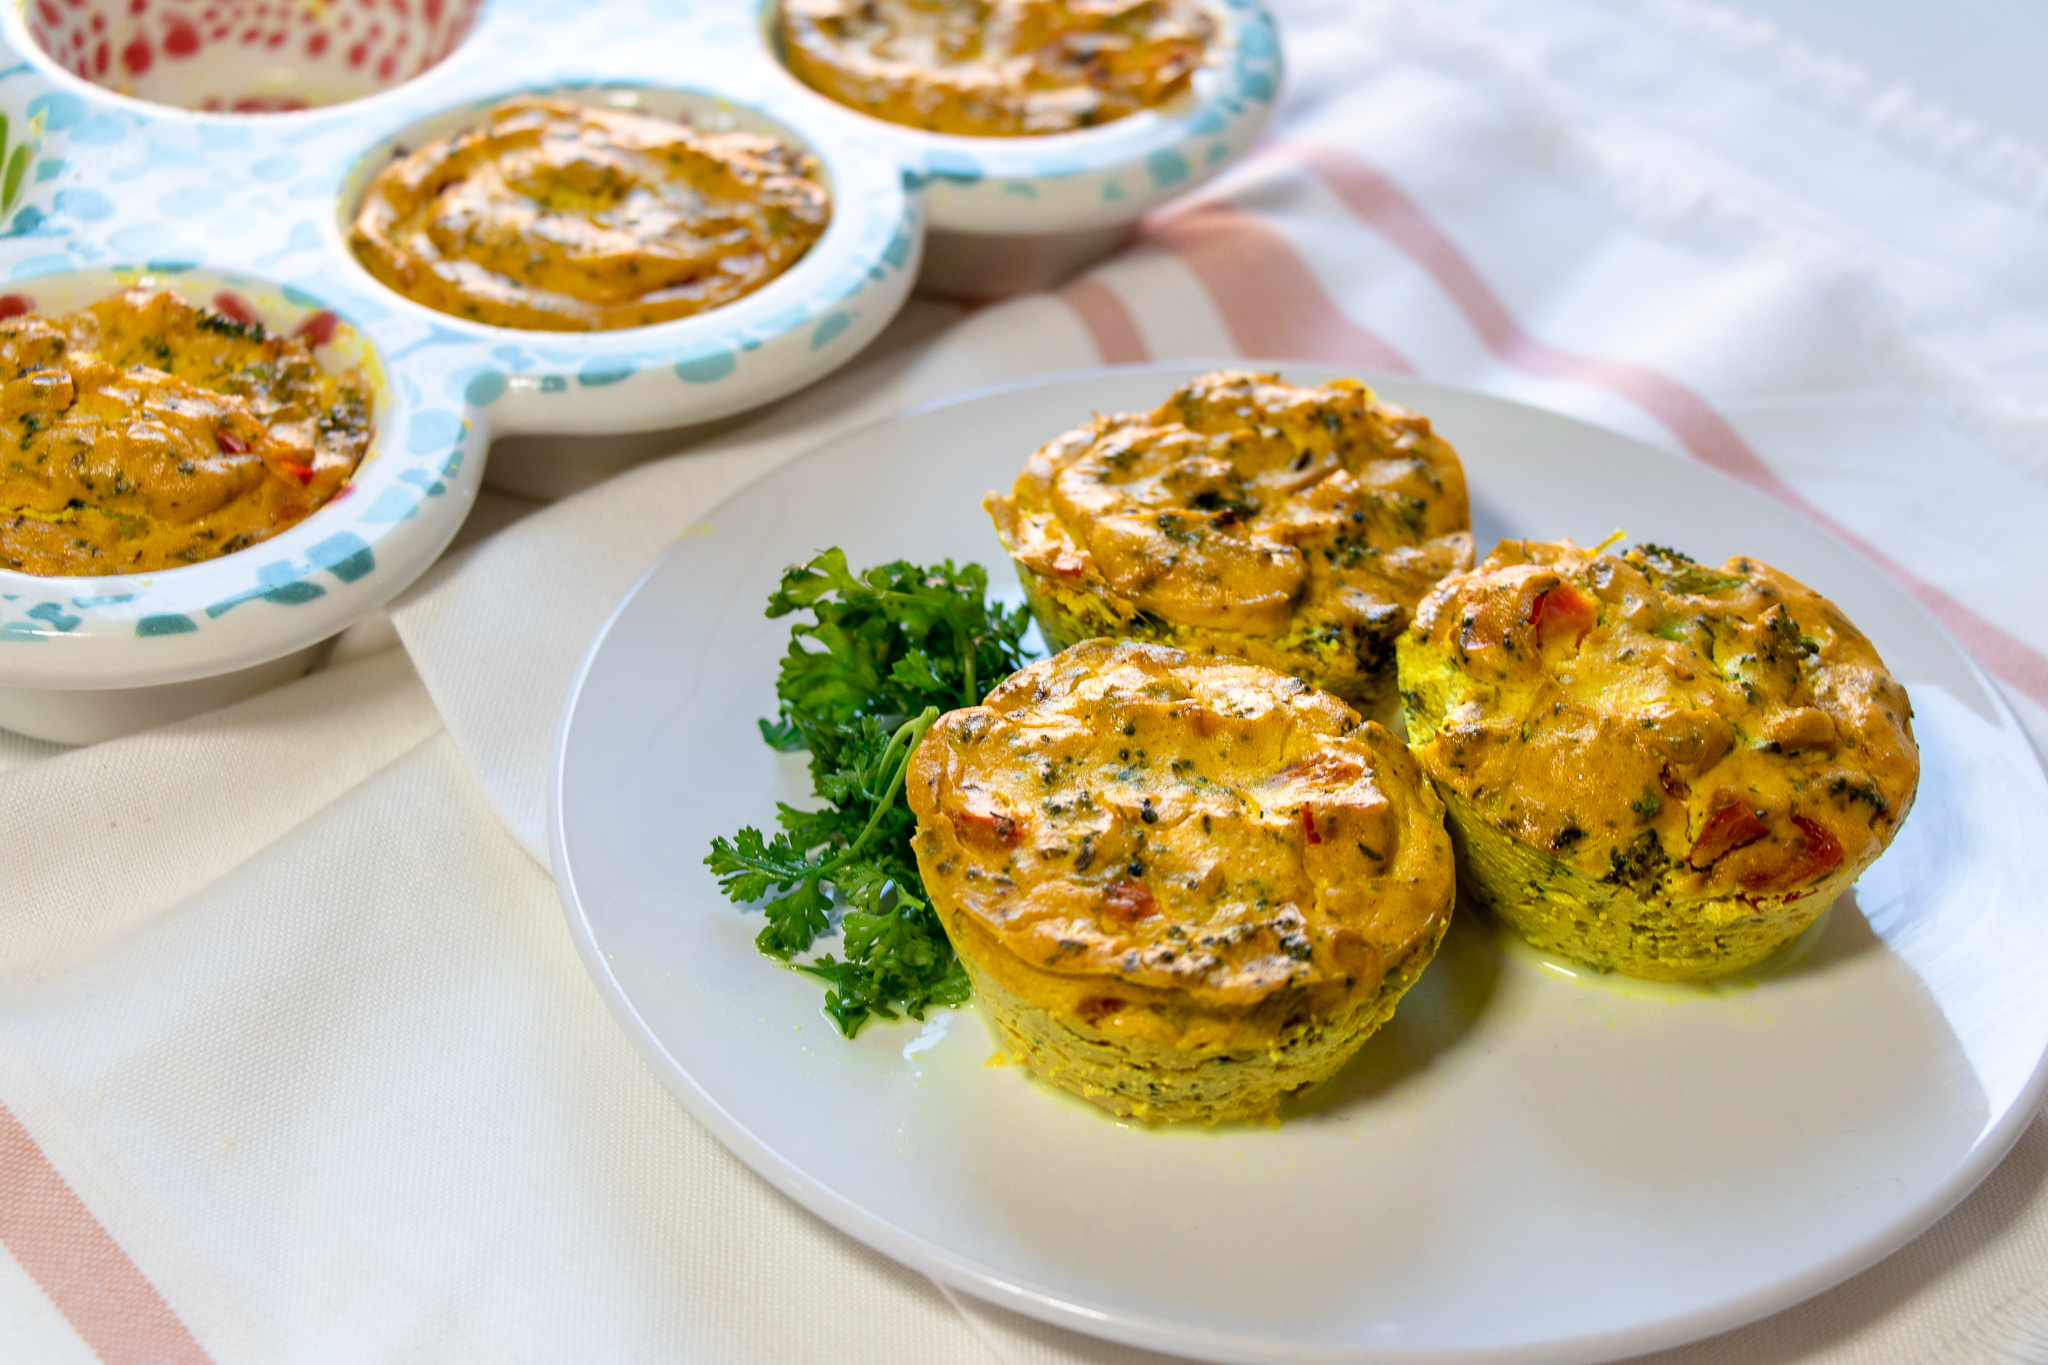 These quick mini quiche are so easy and tasty! If you don't like the veggies listed, feel free to replace them with any you prefer, or have on hand. These reheat really well, so are a perfect meal prep recipe, as well.